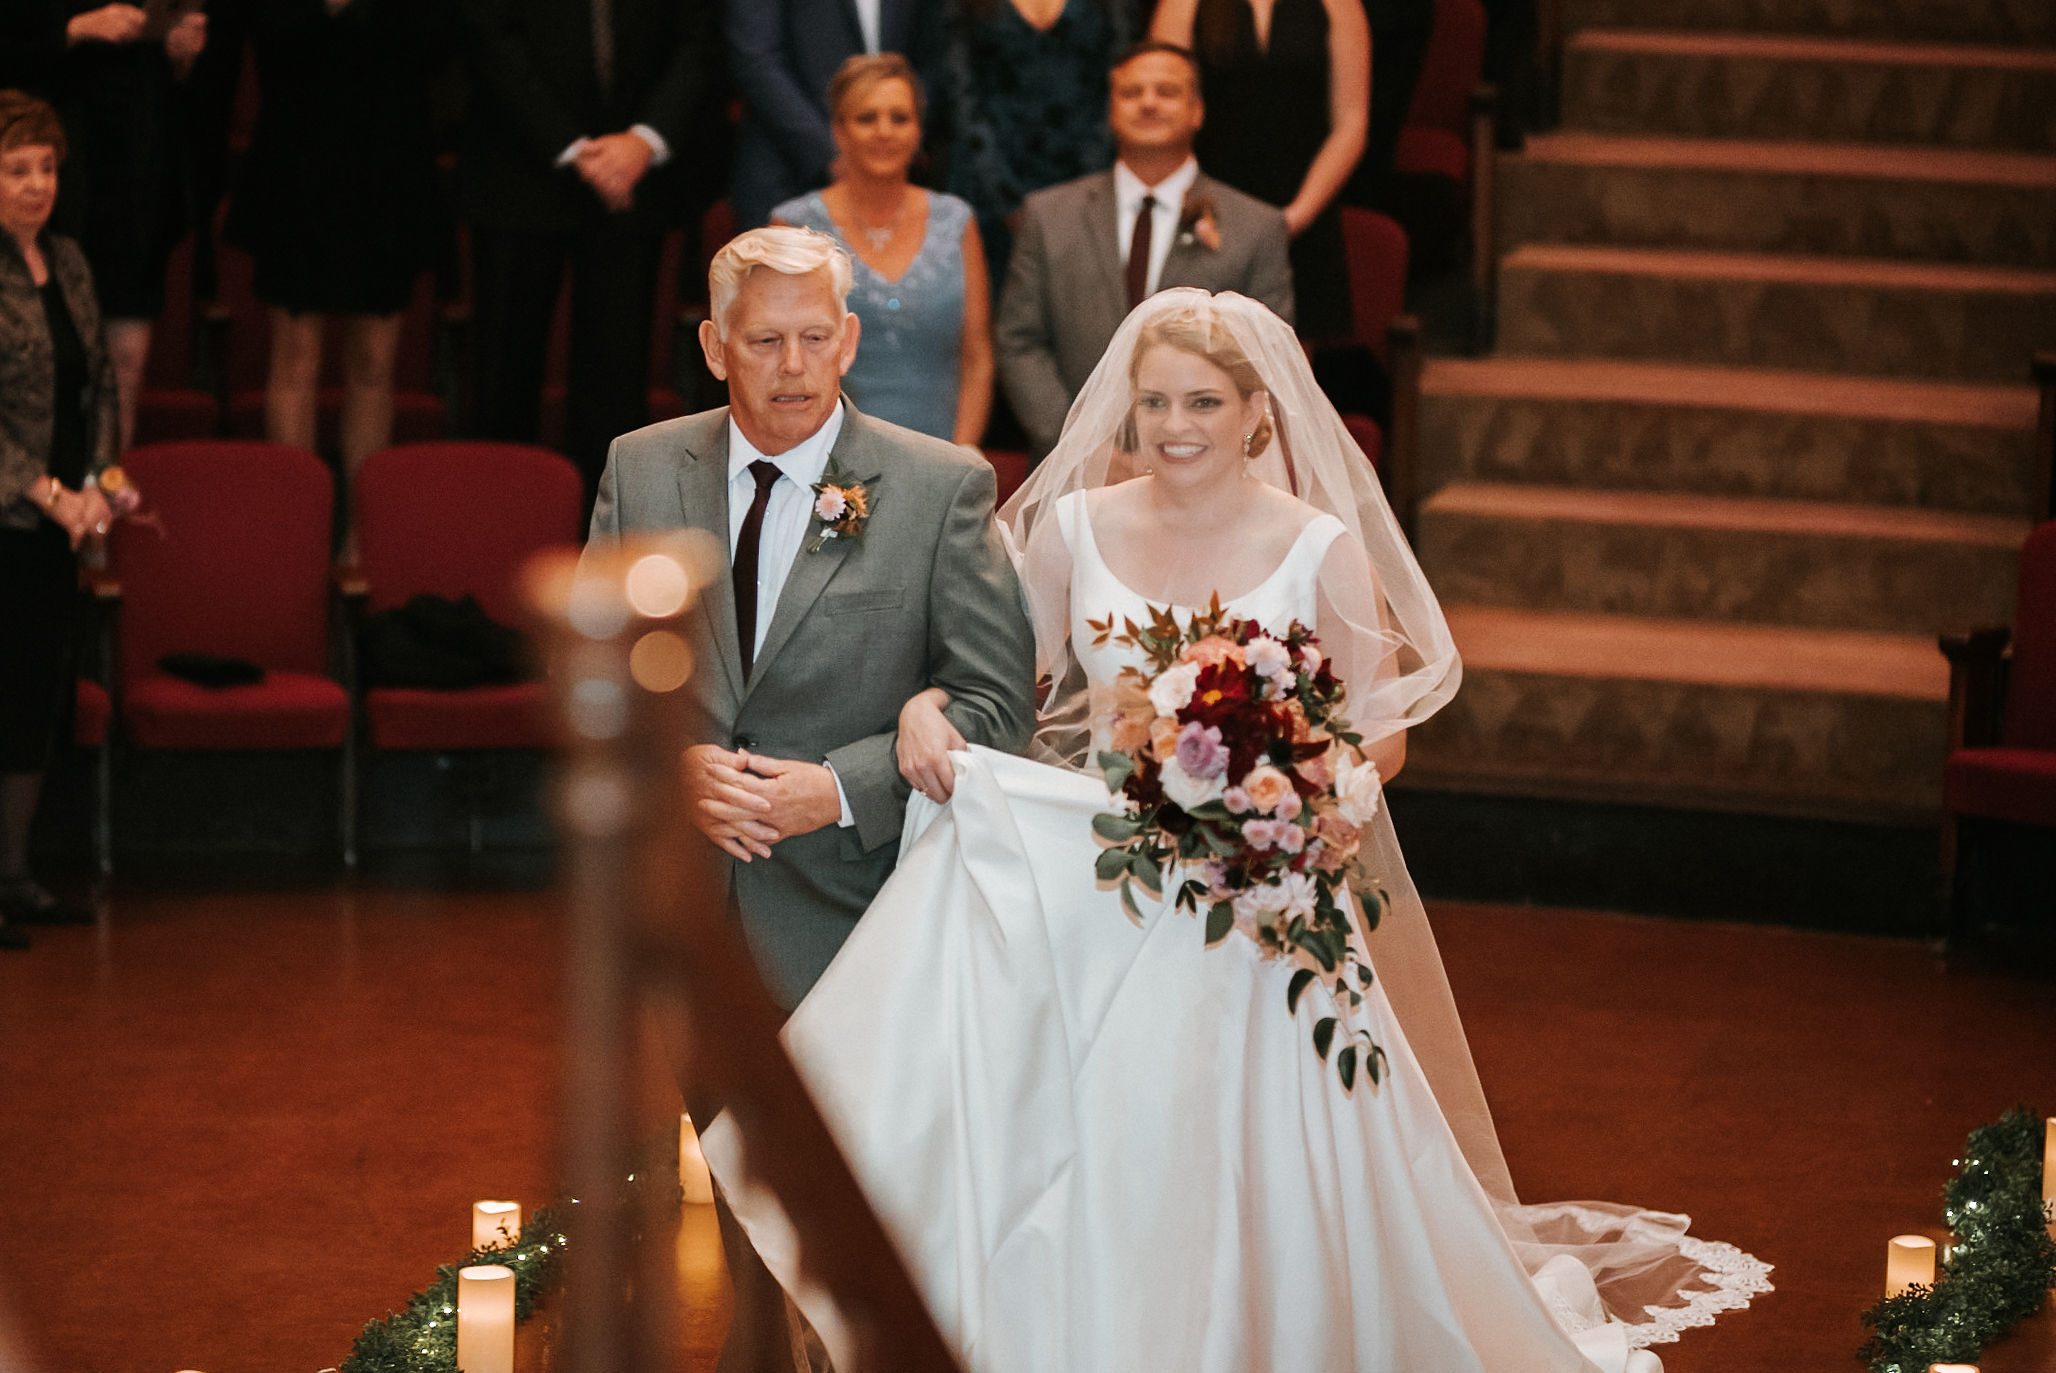 bride and father of the bride walking down the aisle at The George Washington Masonic National Memorial